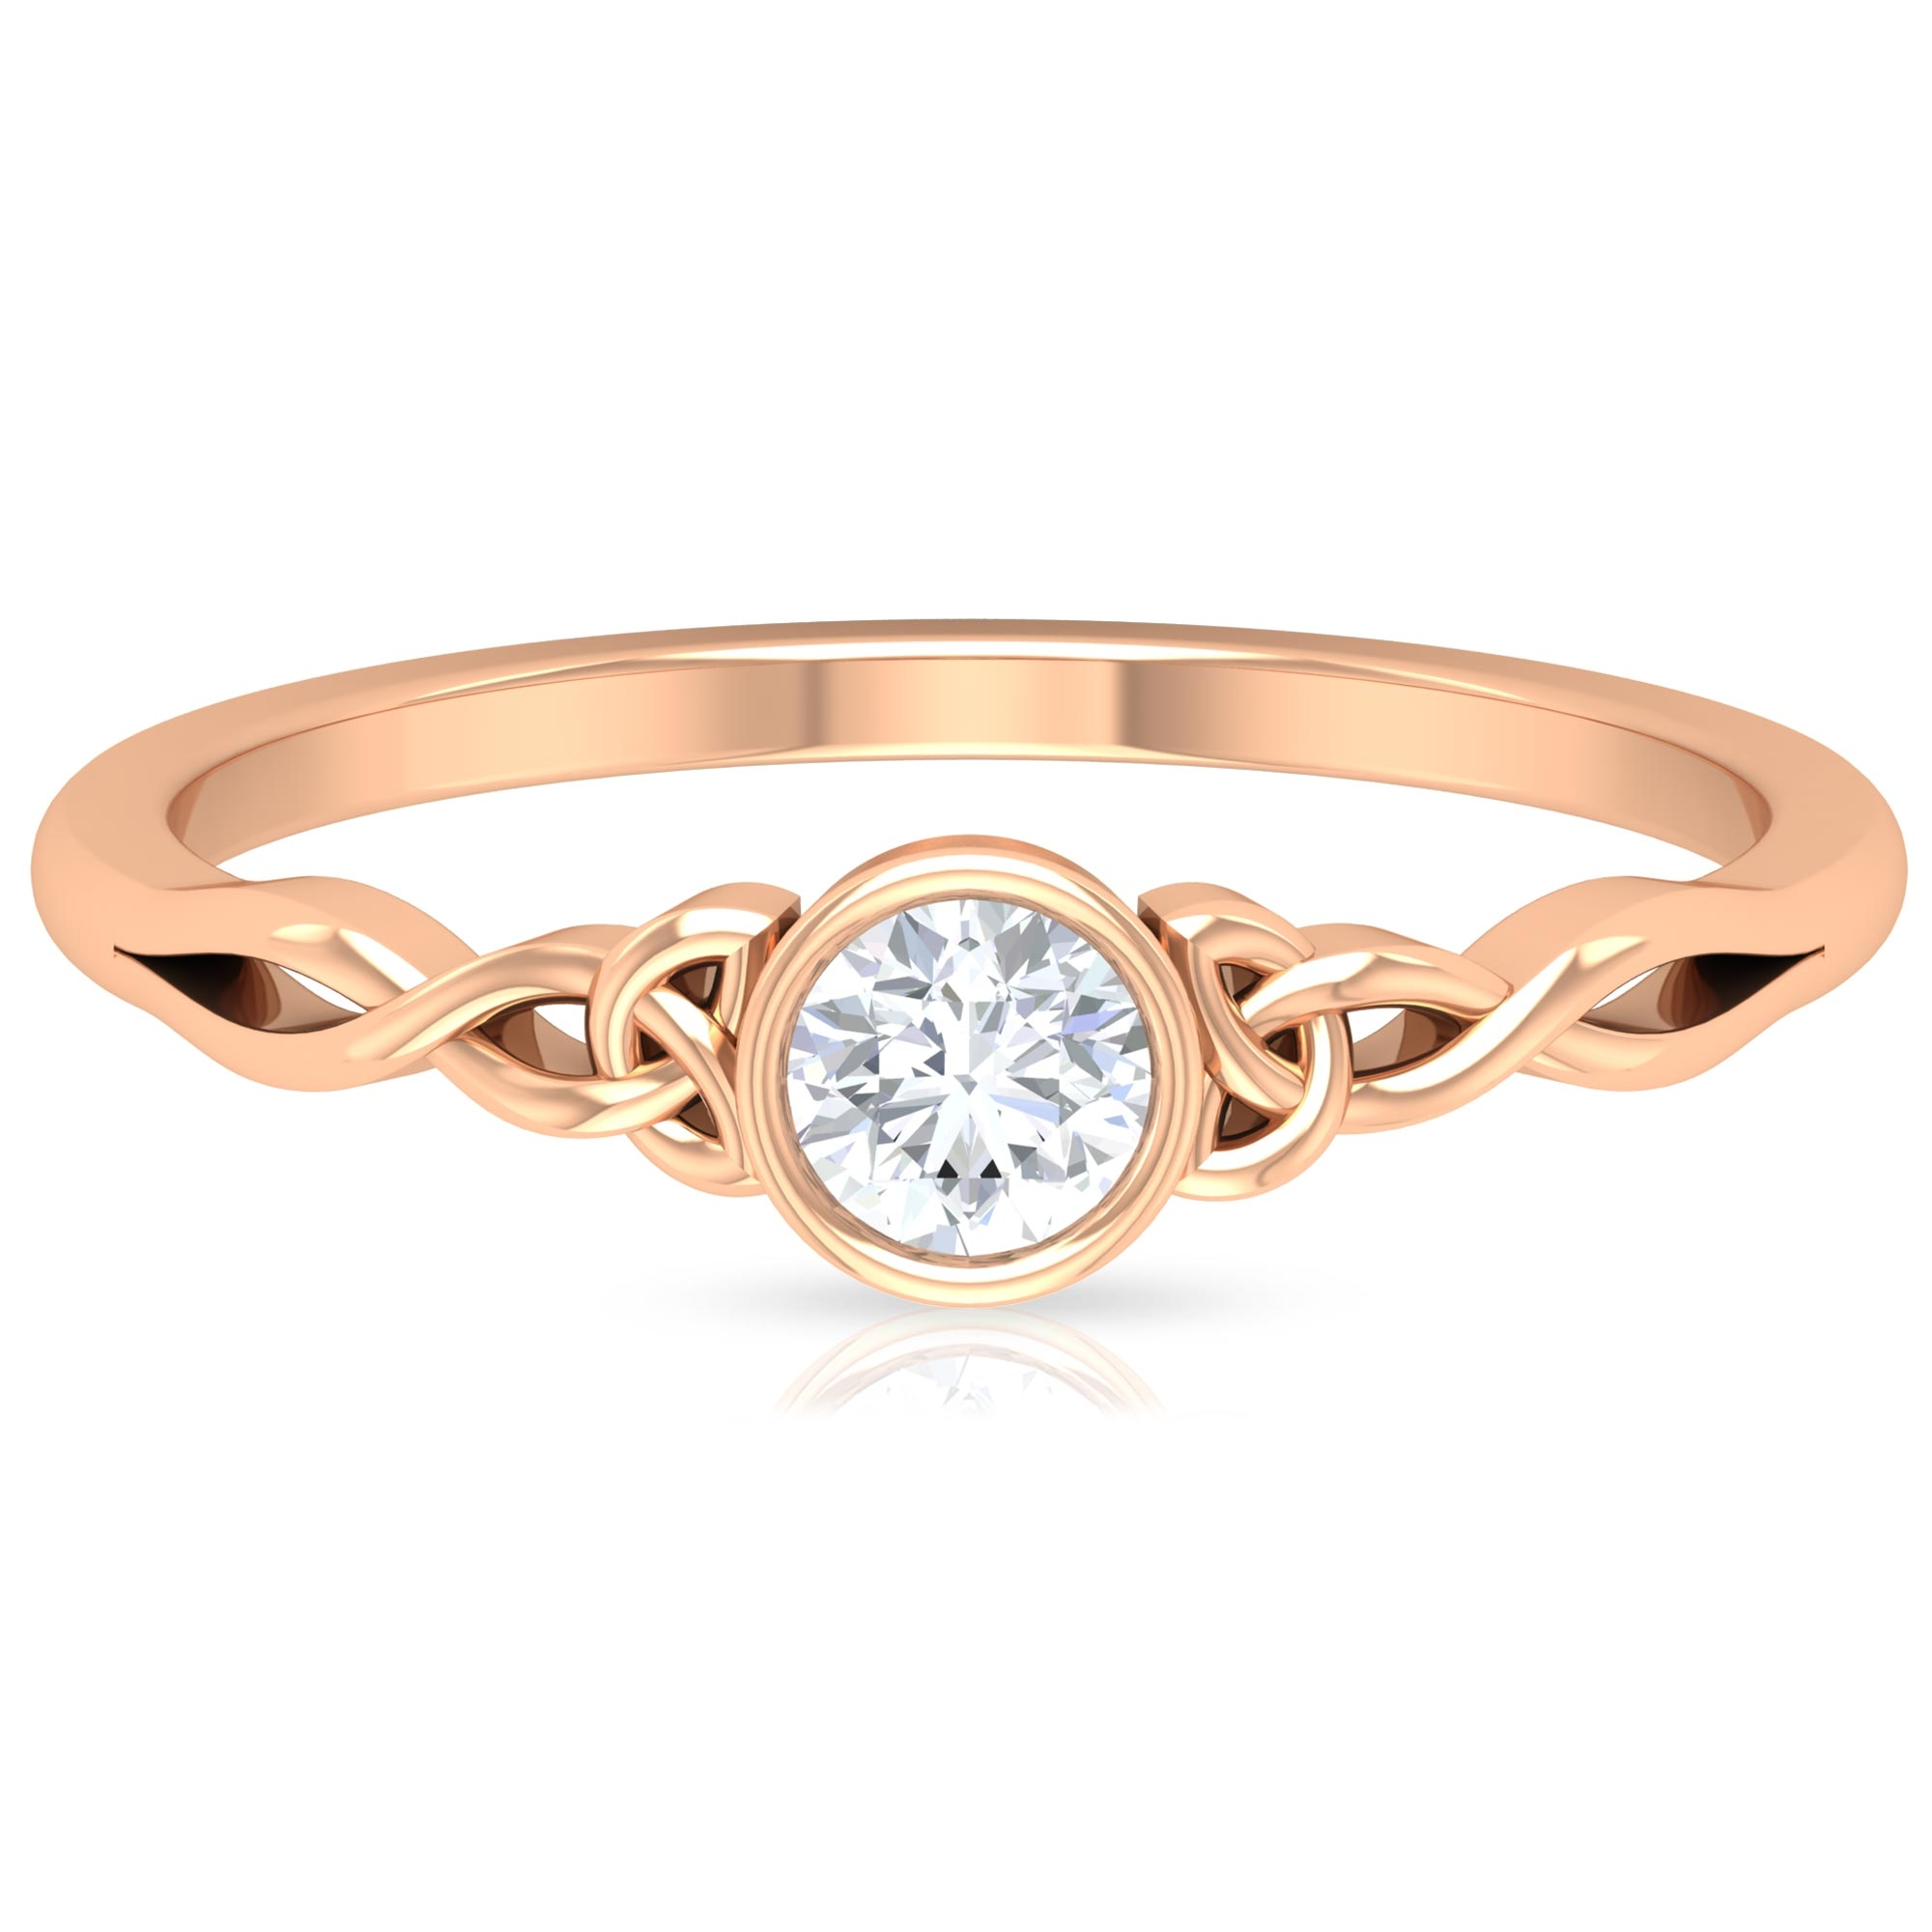 4 MM Round Cut Diamond Solitaire Ring in Bezel Setting with Celtic Details